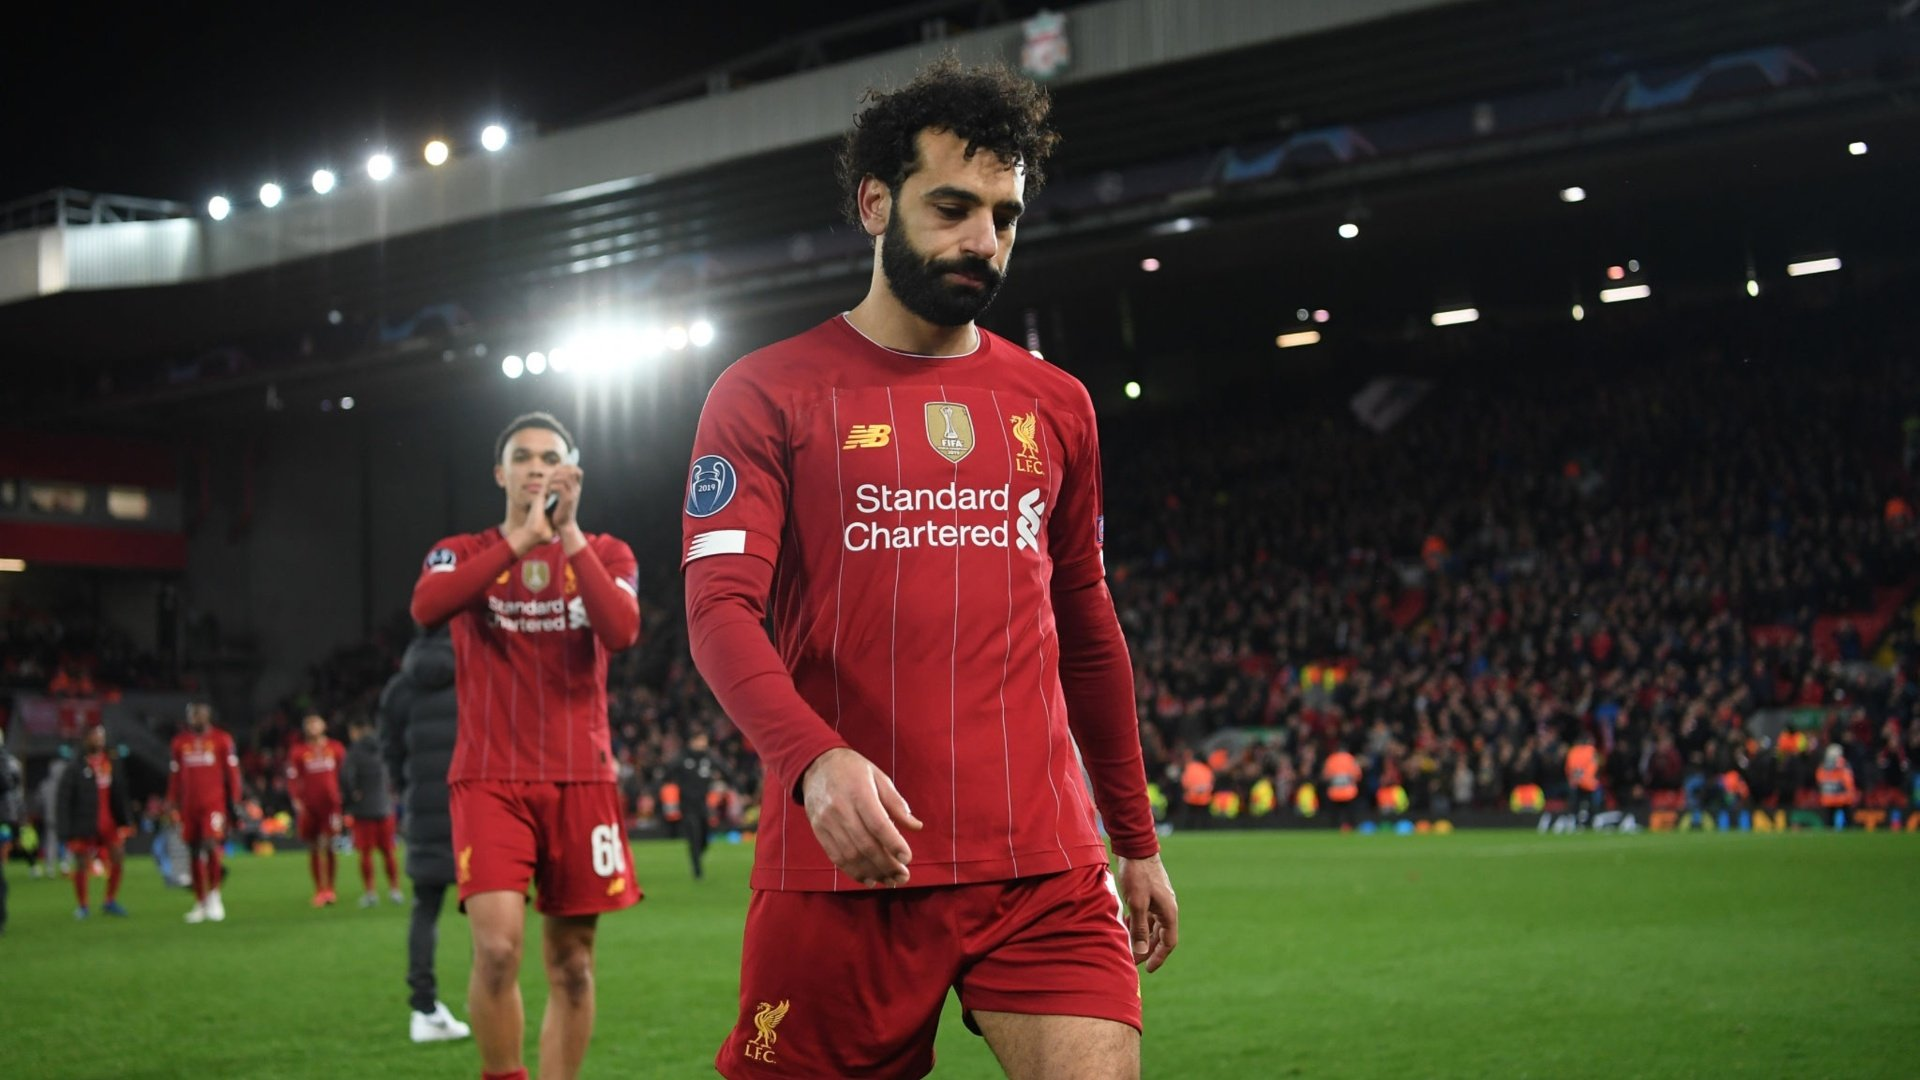 Salah turned down 'really good' offer from Real Madrid